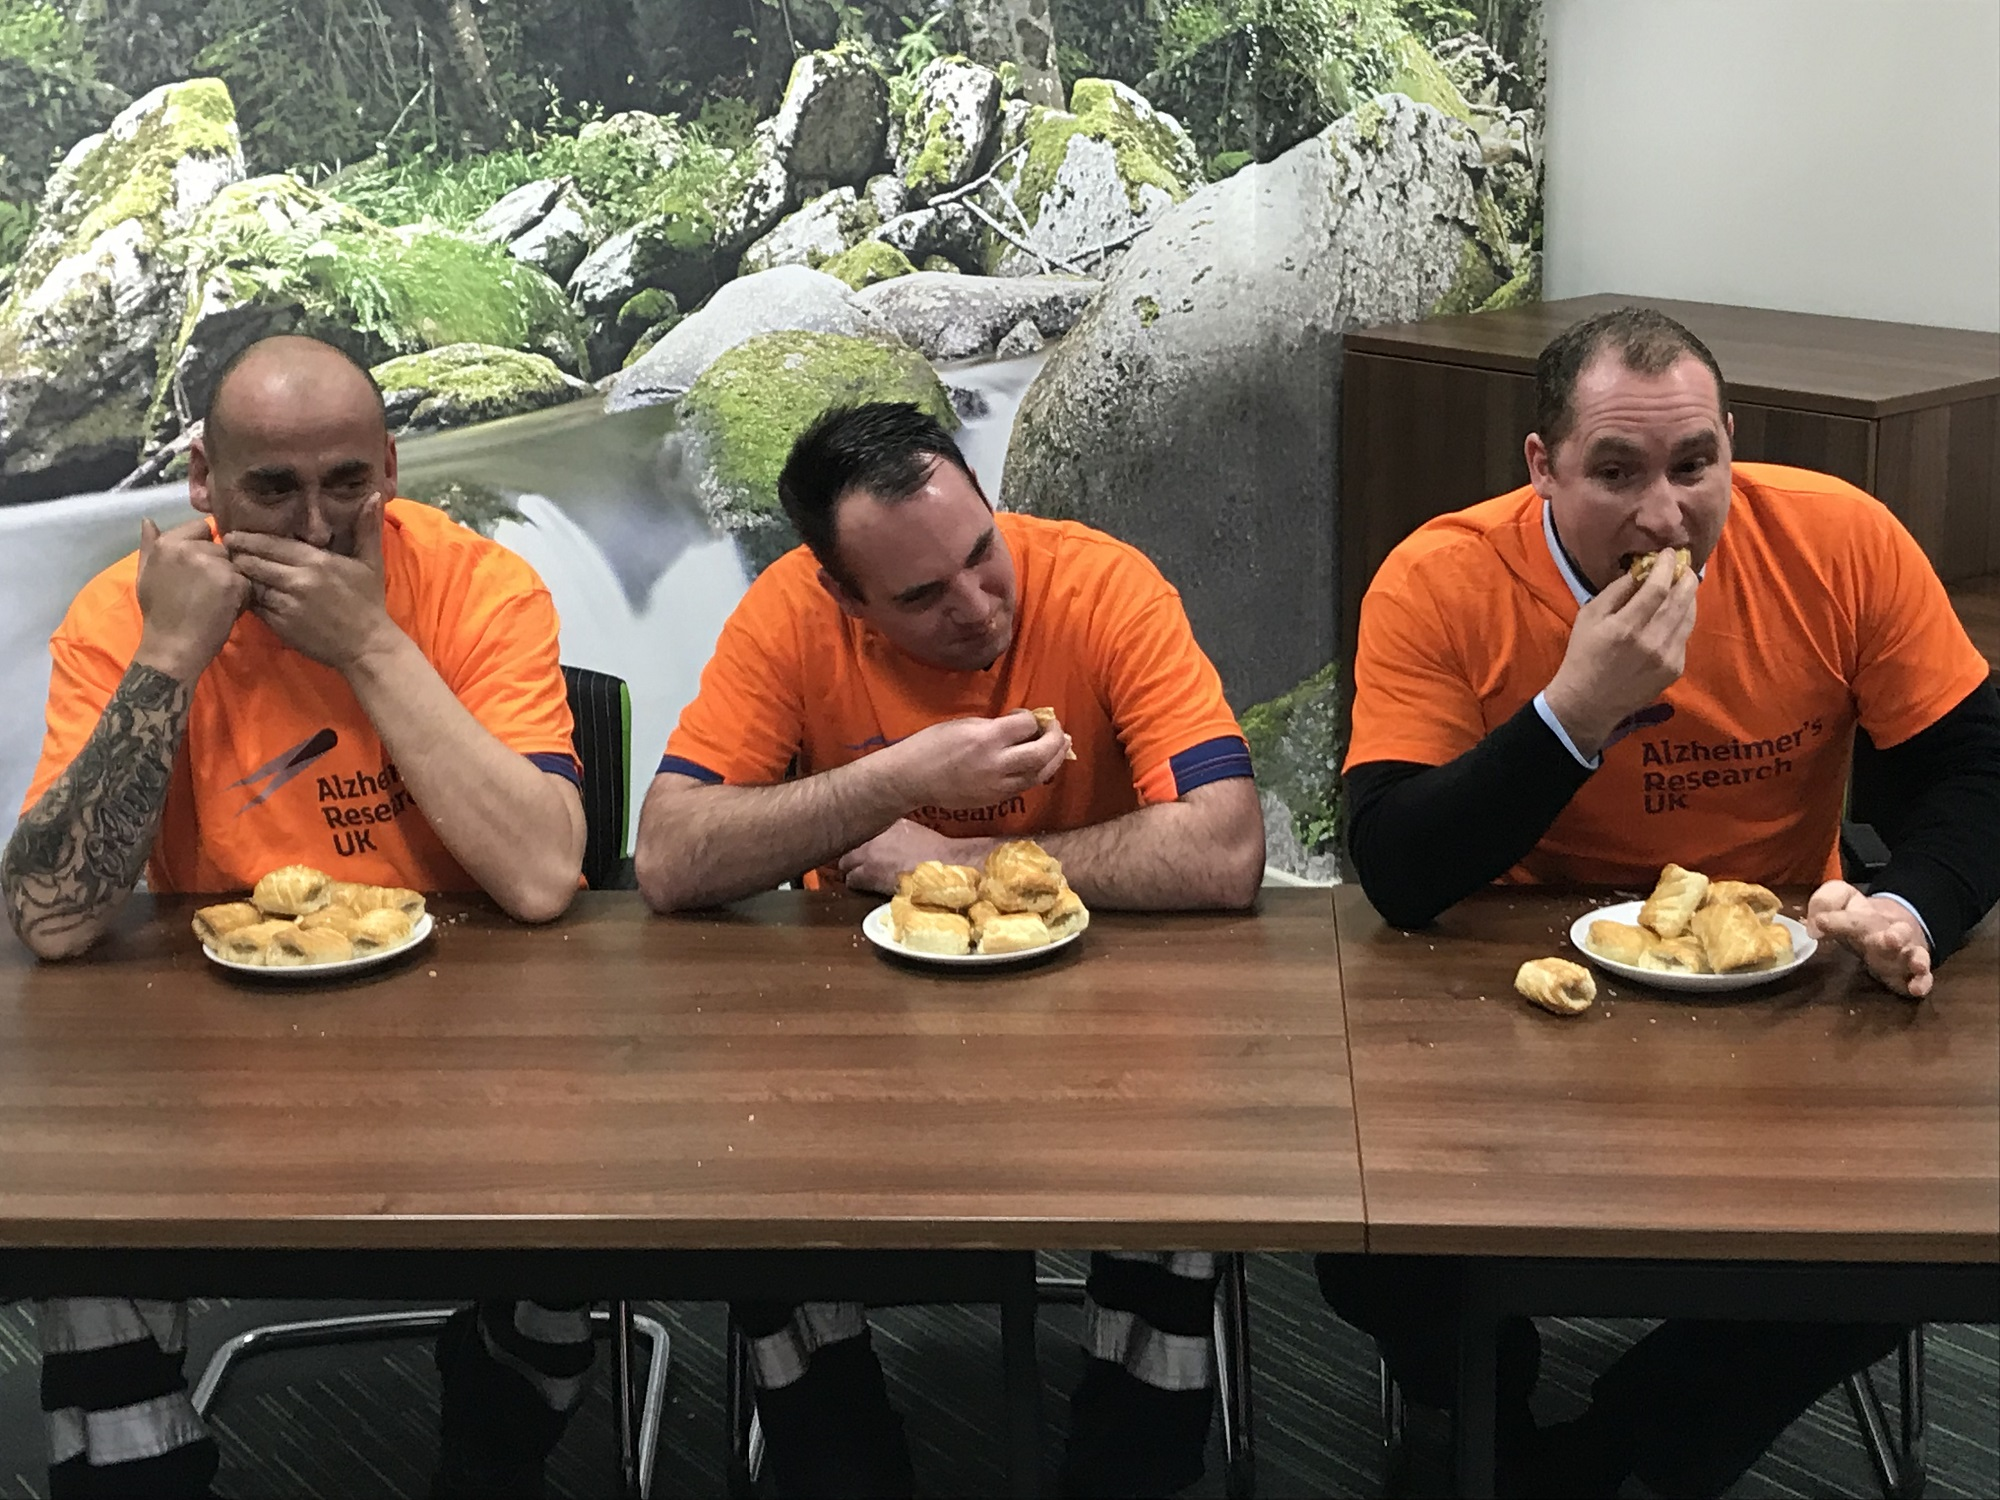 MIDLAND FIXINGS PUTS ITS MONEY WHERE ITS MOUTH IS WITH MAN VS FOOD CHALLENGE